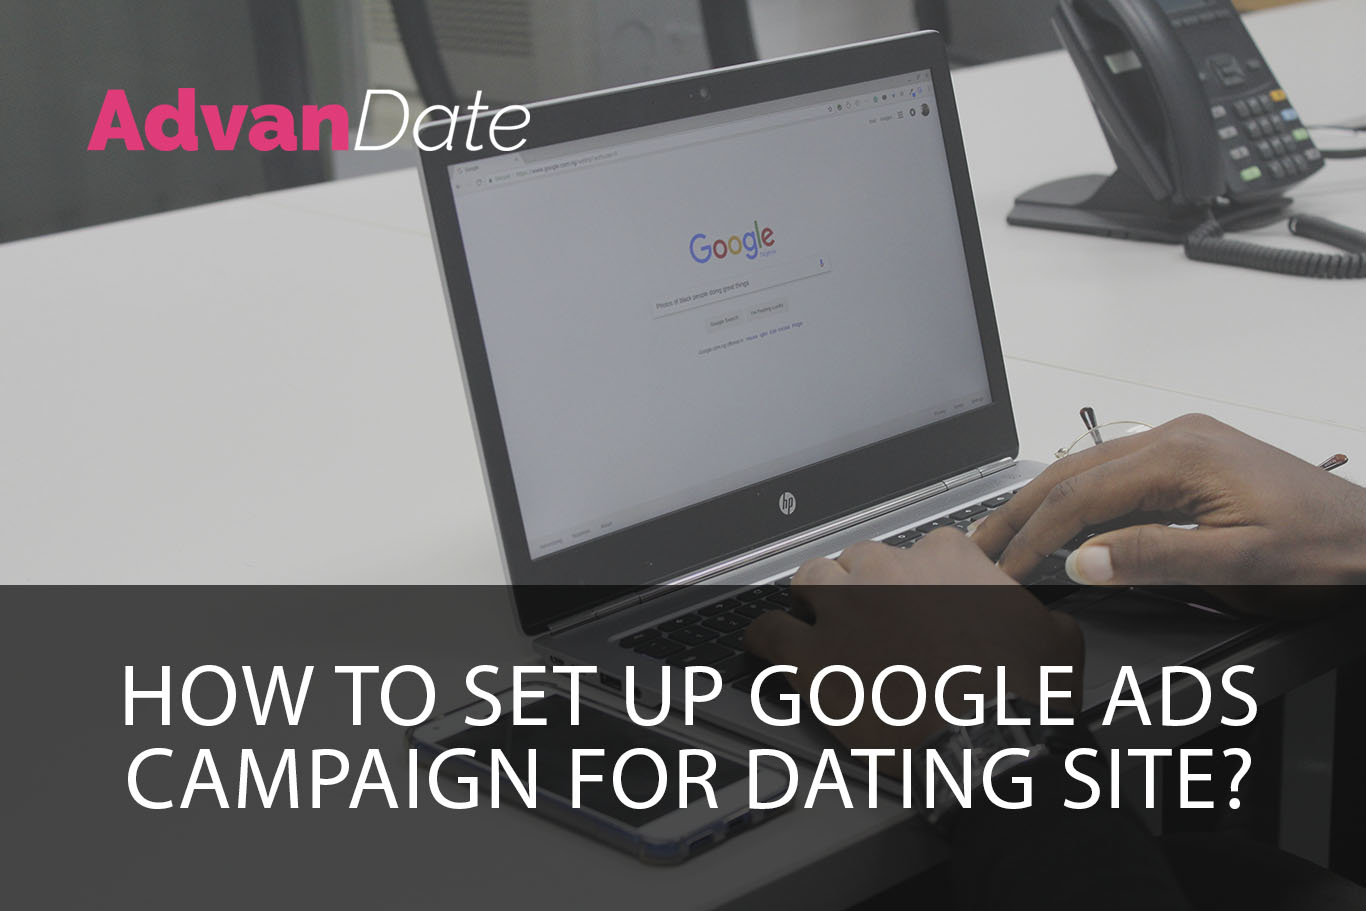 How to set up google ads campaign for dating site